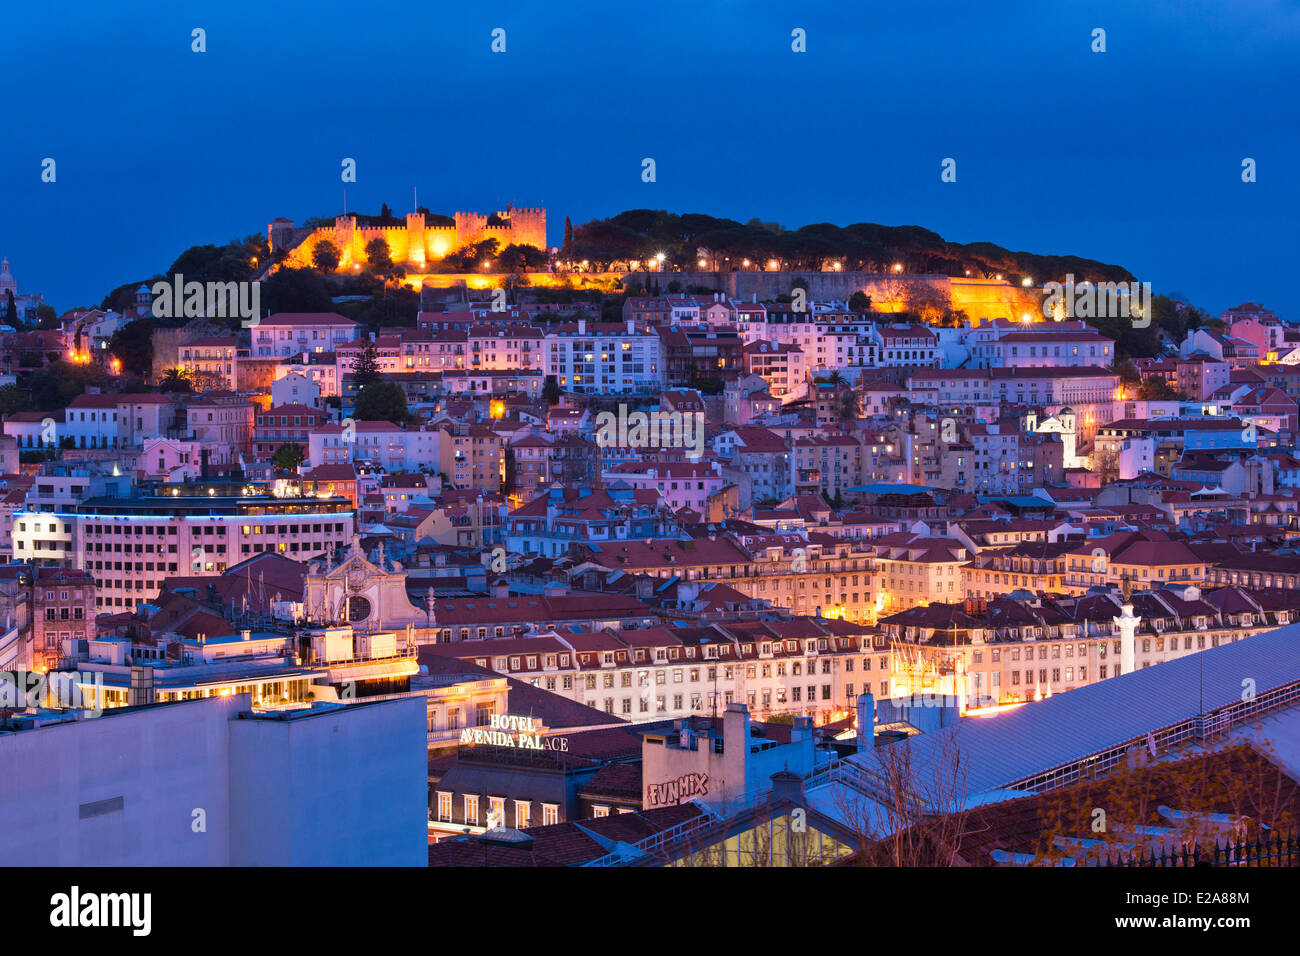 Portugal, Lisbon, panorama from the viewpoint Sao Pedro de Alcantara, the castle Sao Jorge overlooks the city - Stock Image